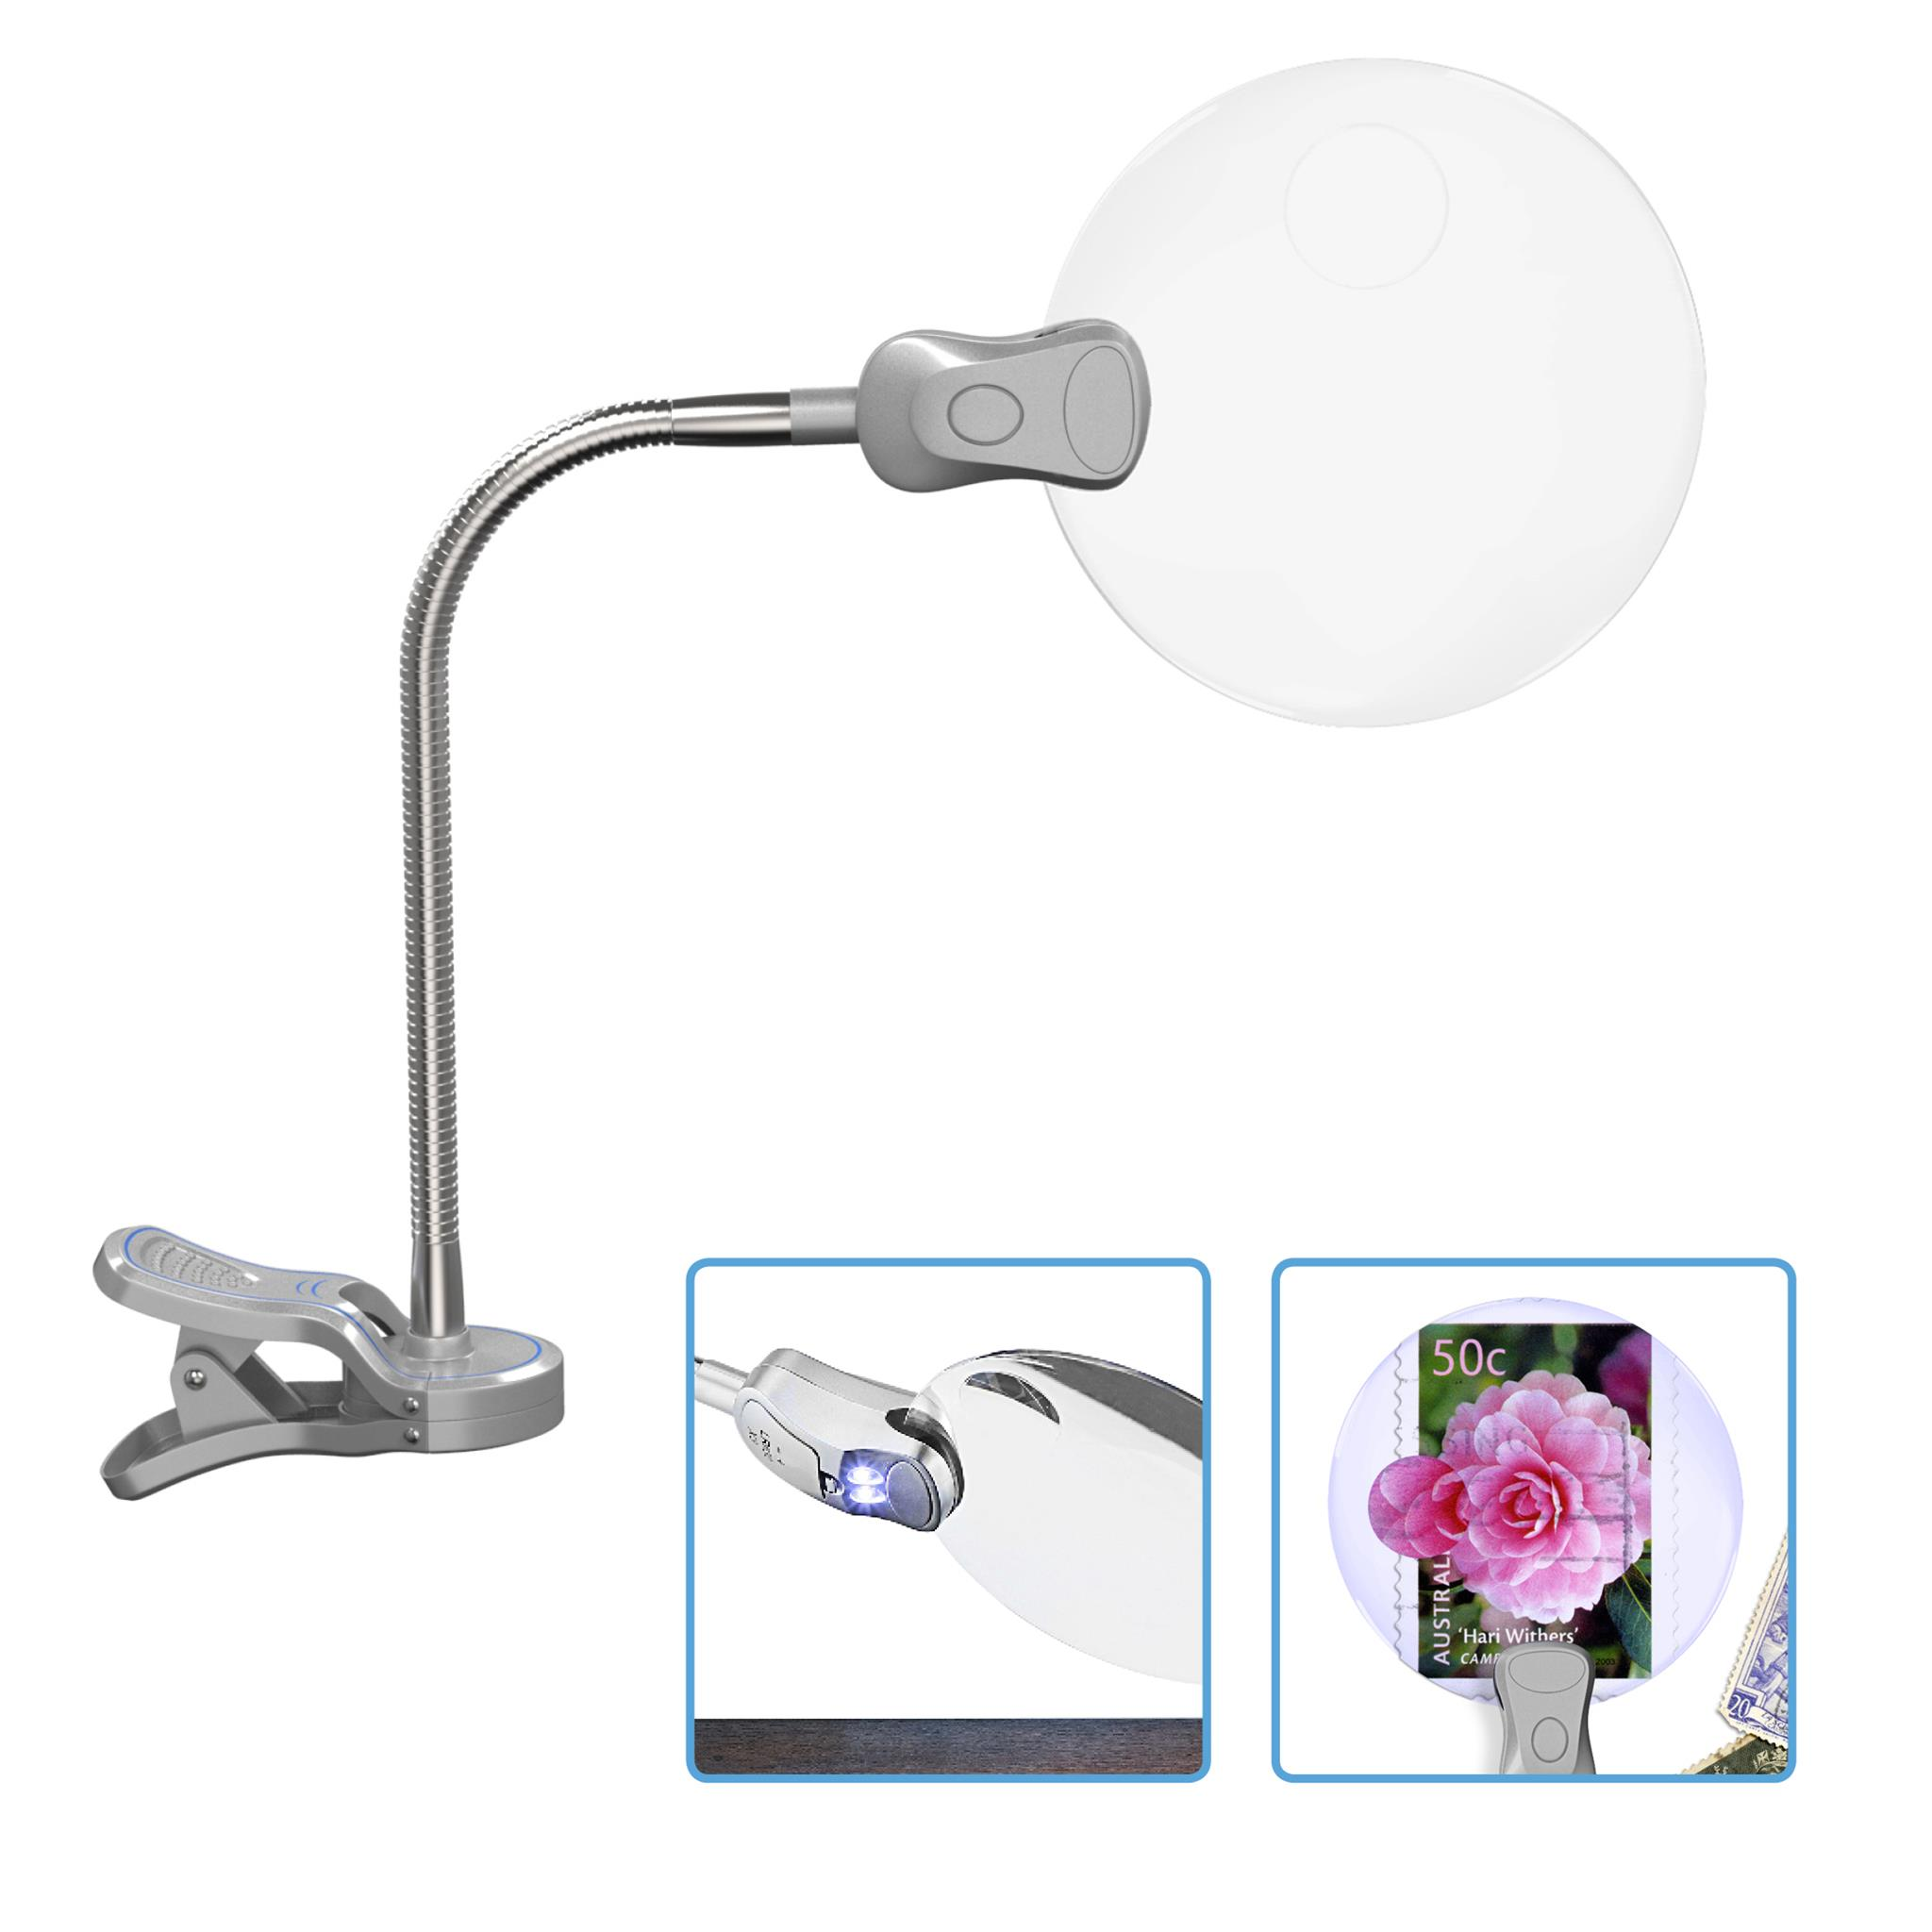 MagniPros 3X LED Lighted Clip-on Tabletop Magnifying Lamp Magnifier with 5X Spot Lens- Heavy Duty Non-Slip Clamp & Metal Goose Neck